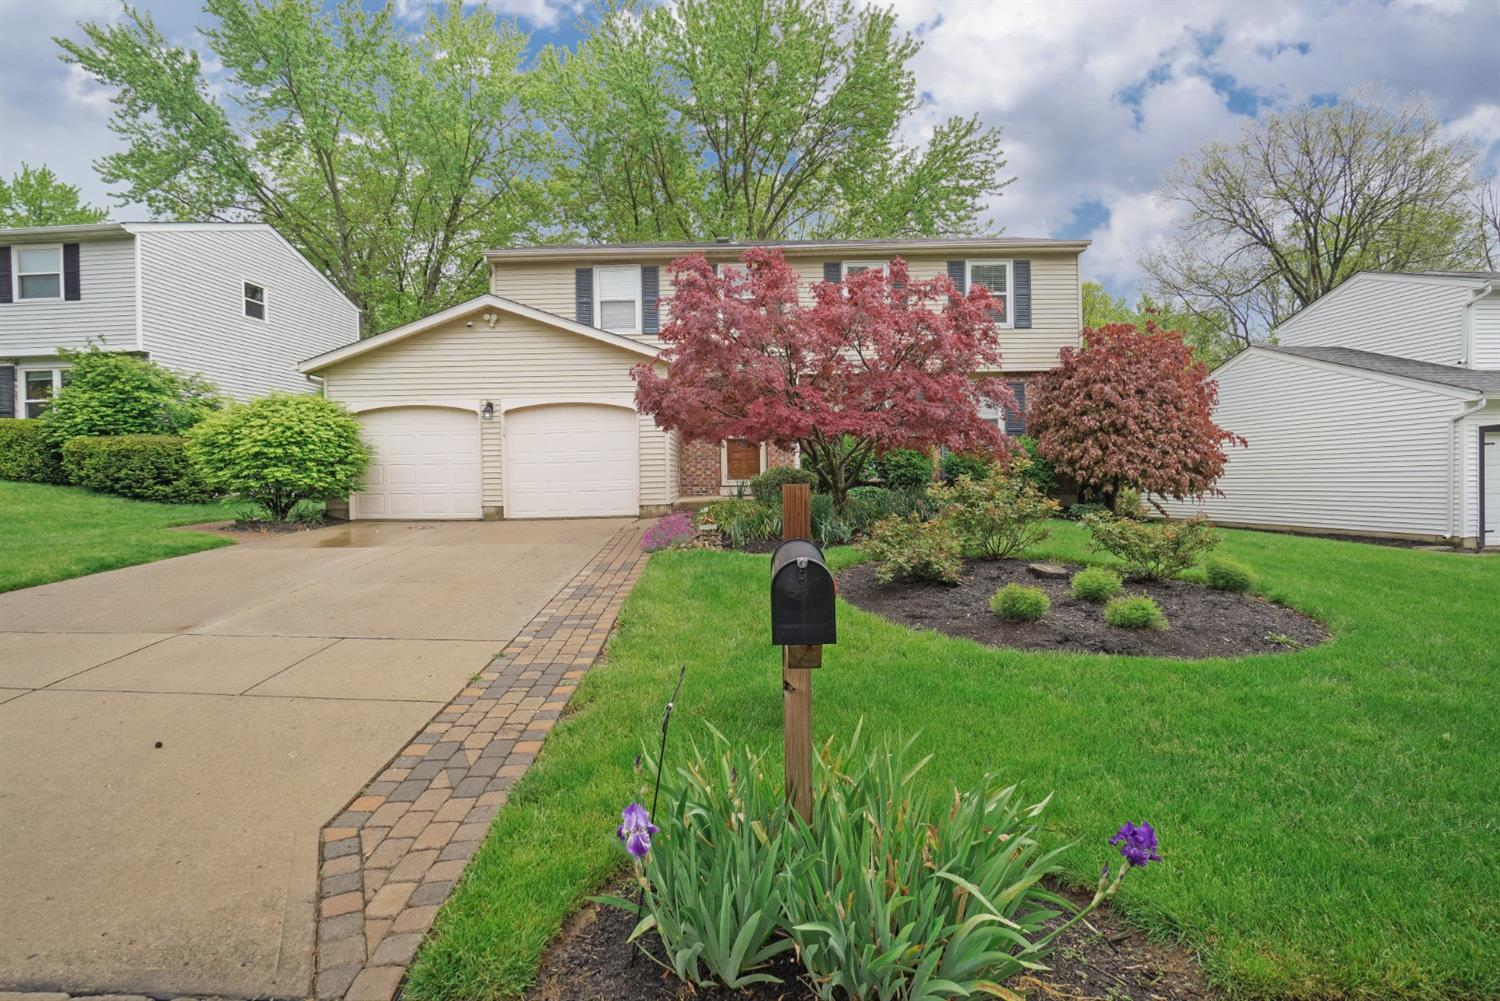 Property for sale at 8866 Penfield Way, Deerfield Twp.,  Ohio 45039